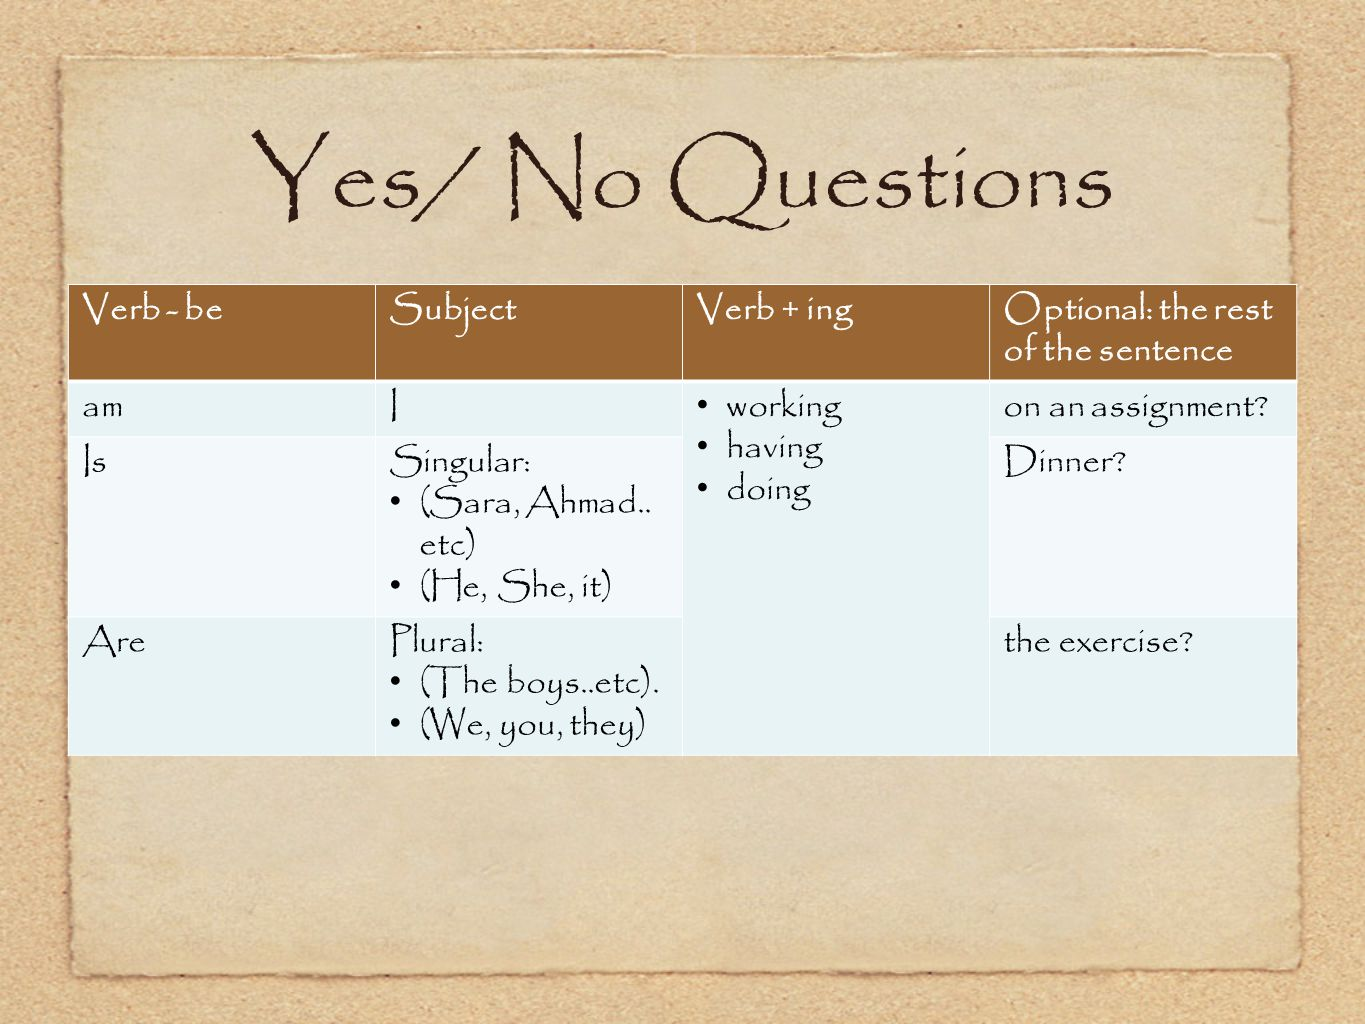 Yes/ No Questions Verb - beSubjectVerb + ingOptional: the rest of the sentence amI working having doing on an assignment.